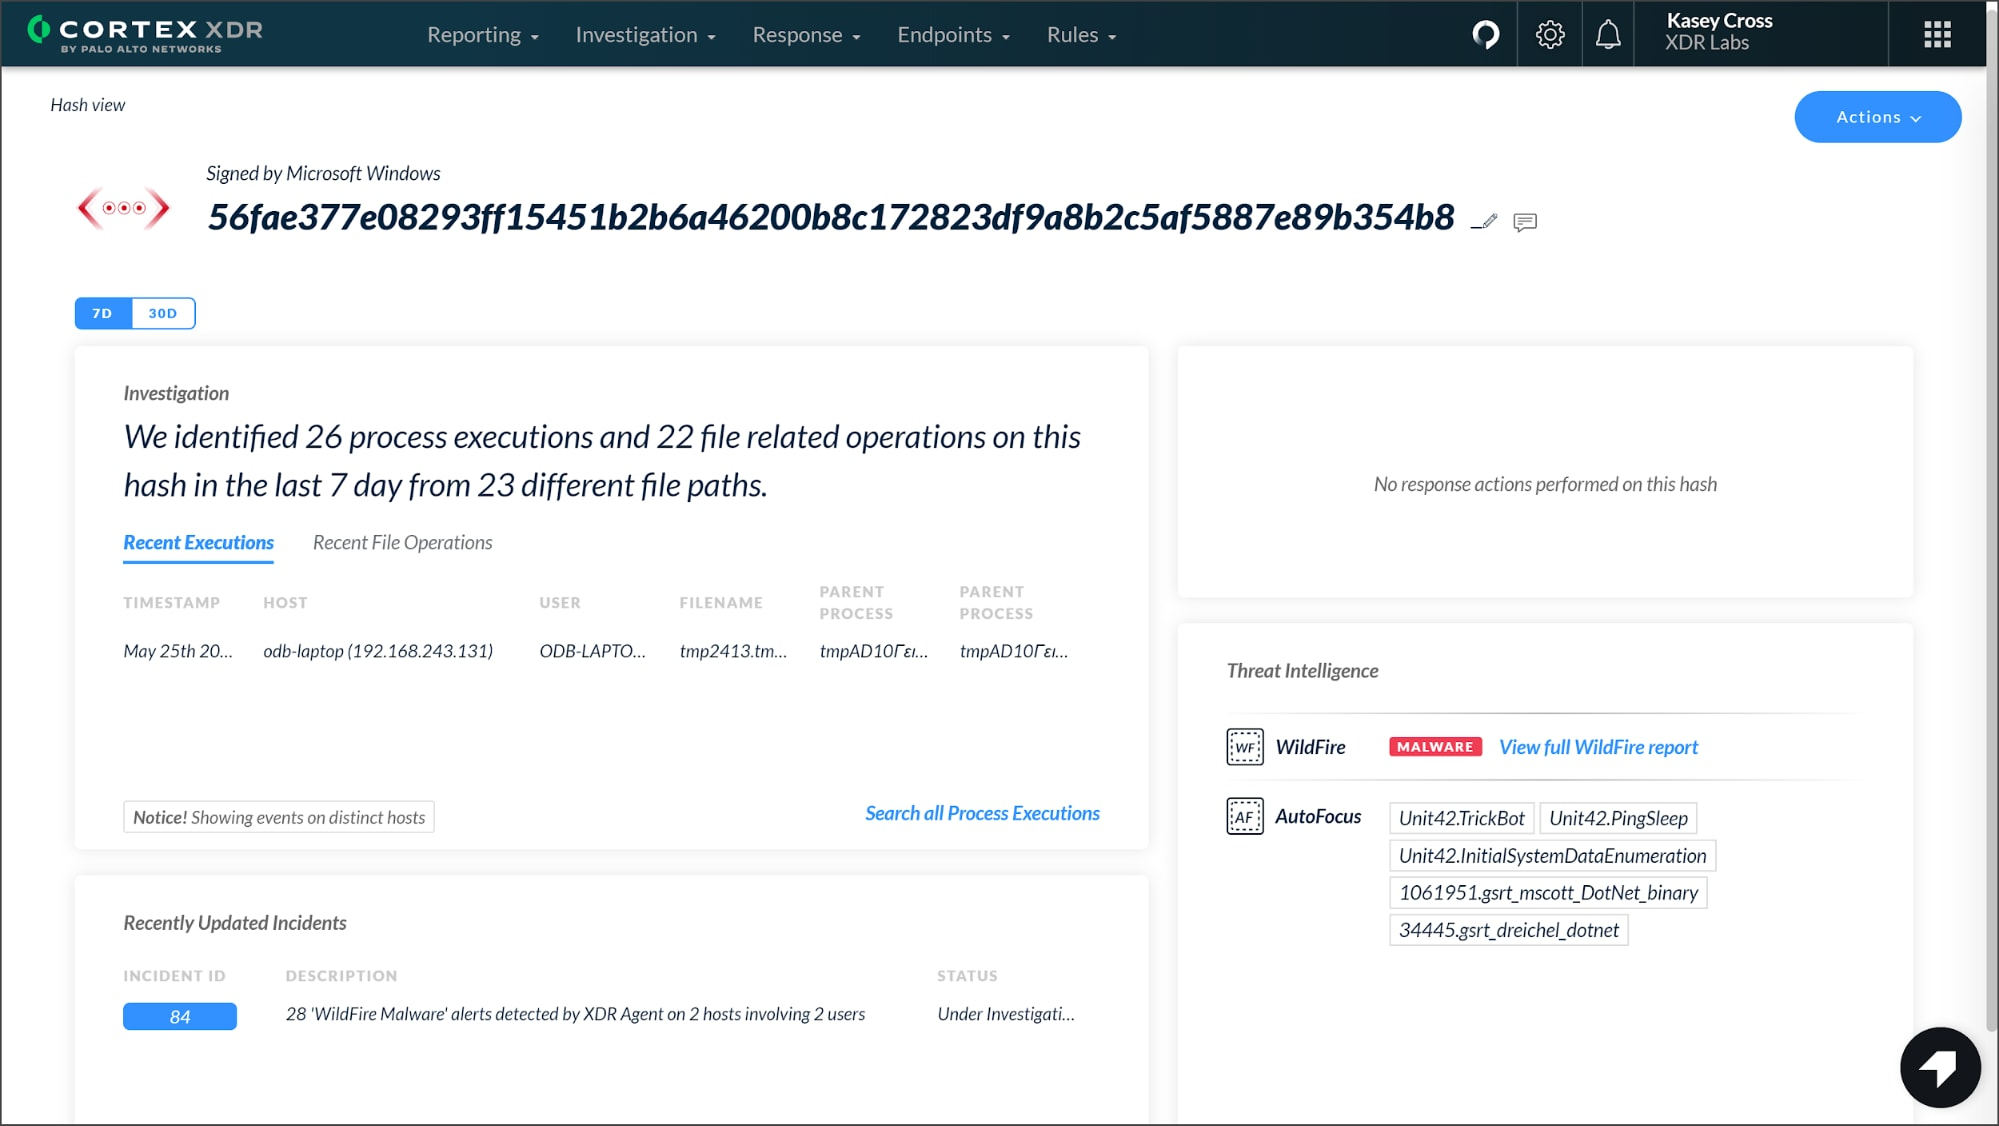 This screenshot shows the Hash View in Cortex XDR 2.4